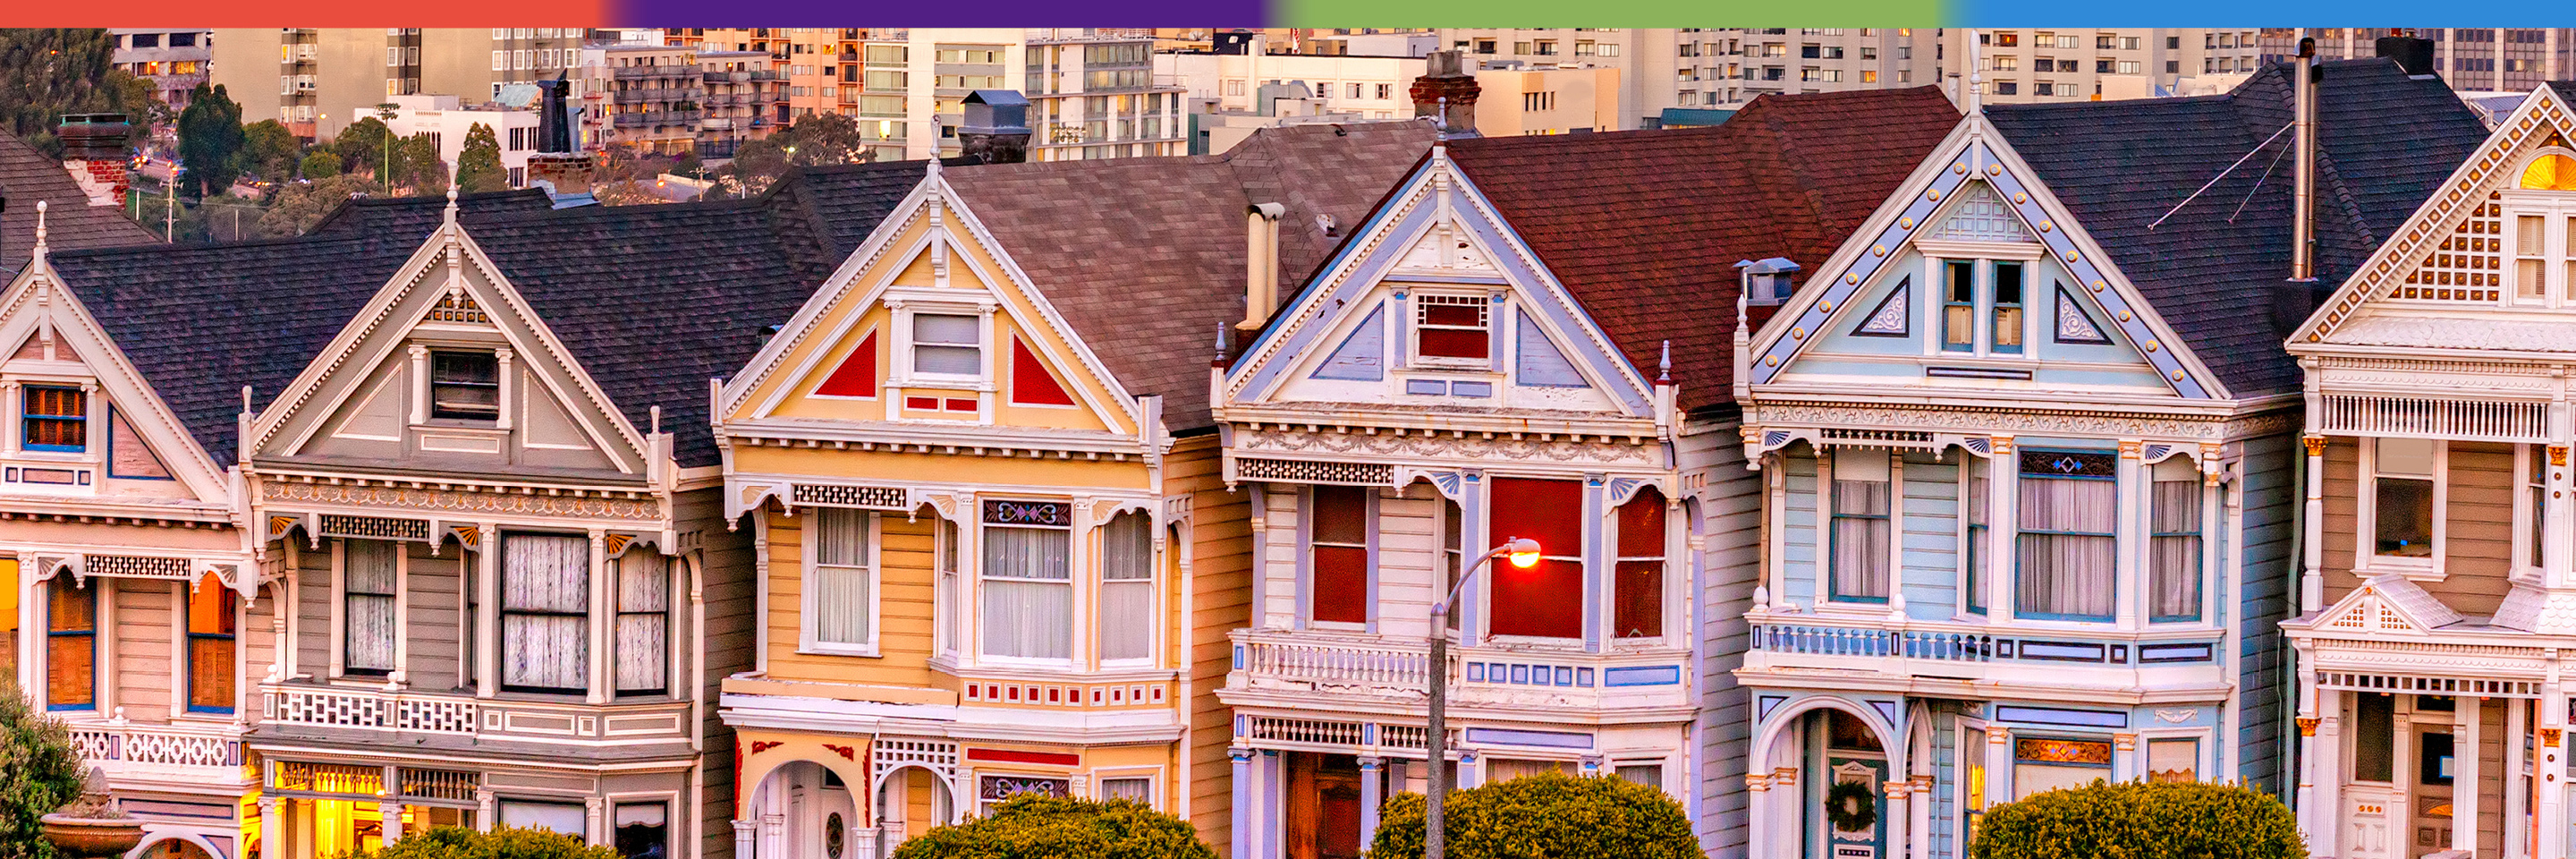 California Dreamin': Northern California By Design with MORE San Francisco